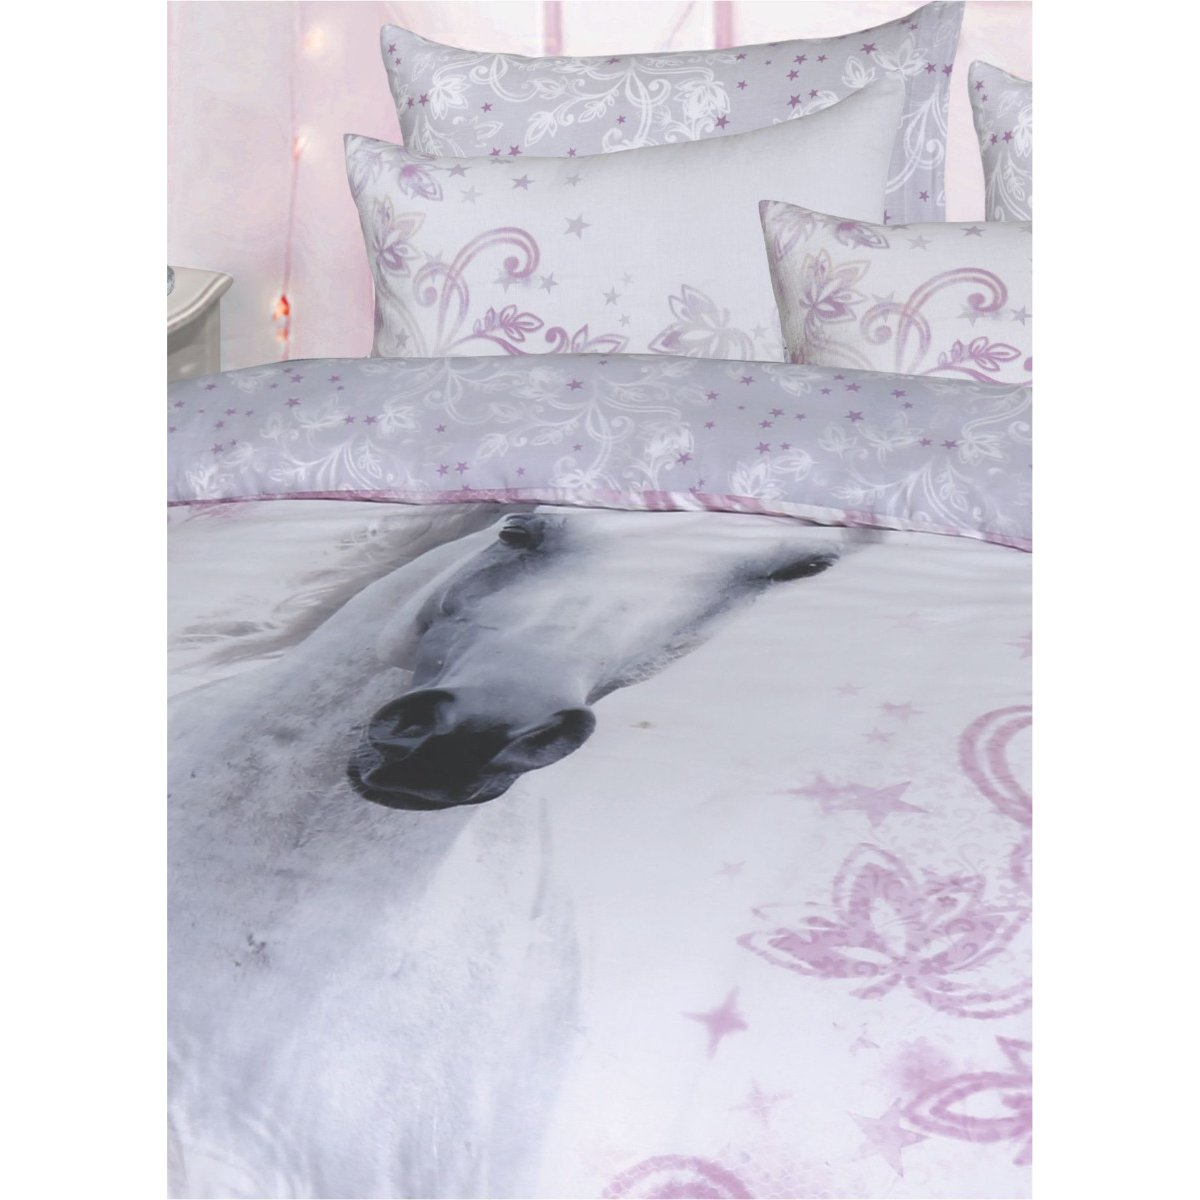 Pretty Unicorn Lilac Bedding - Reversible Duvet Cover and Pillowcase Set